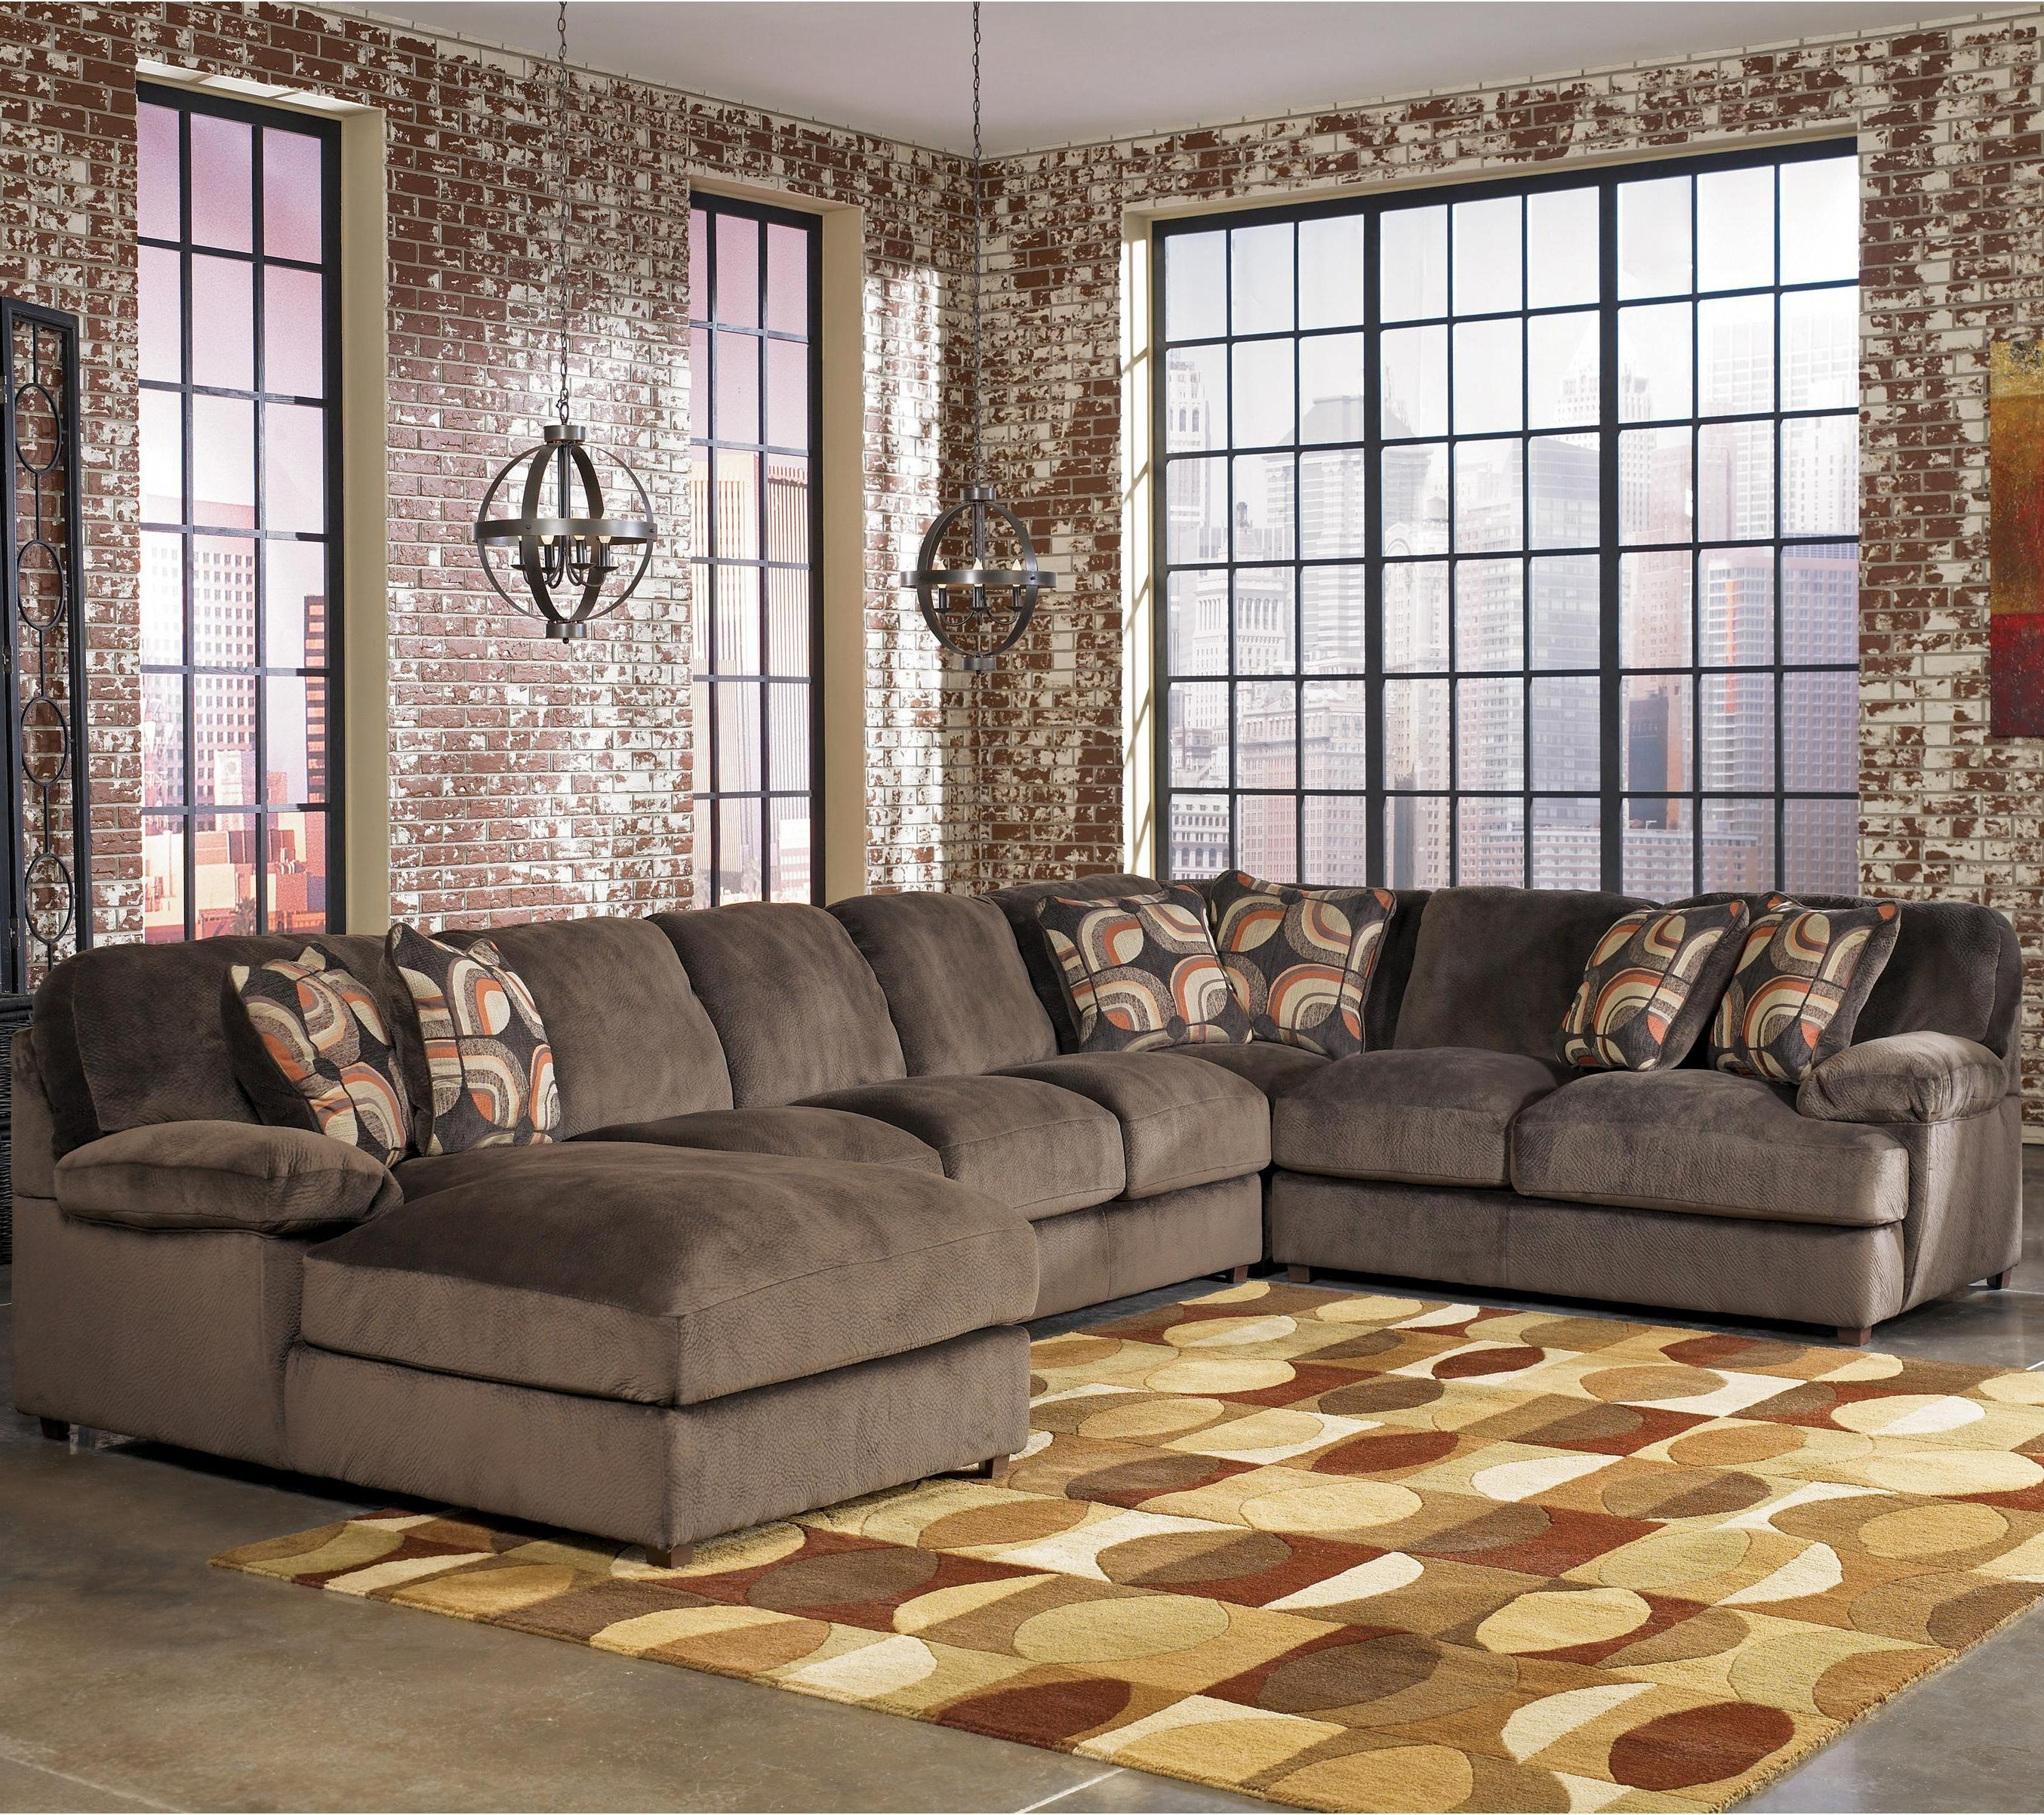 Signature Designashley Truscotti – Cafe Contemporary 4 Piece Inside Norfolk Chocolate 3 Piece Sectionals With Raf Chaise (Image 31 of 33)